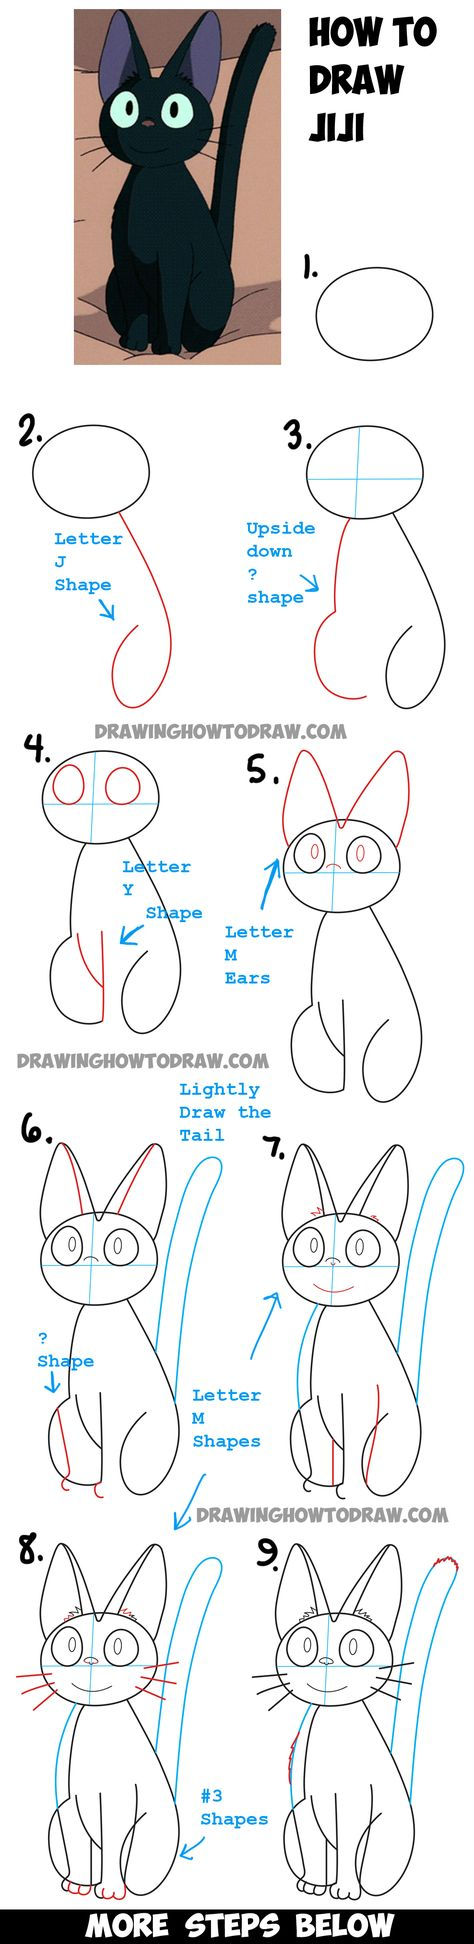 How to Draw Jiji from Kiki's Delivery Service - Easy Step by Step Drawing Tutorial - How to Draw Step by Step Drawing Tutorials